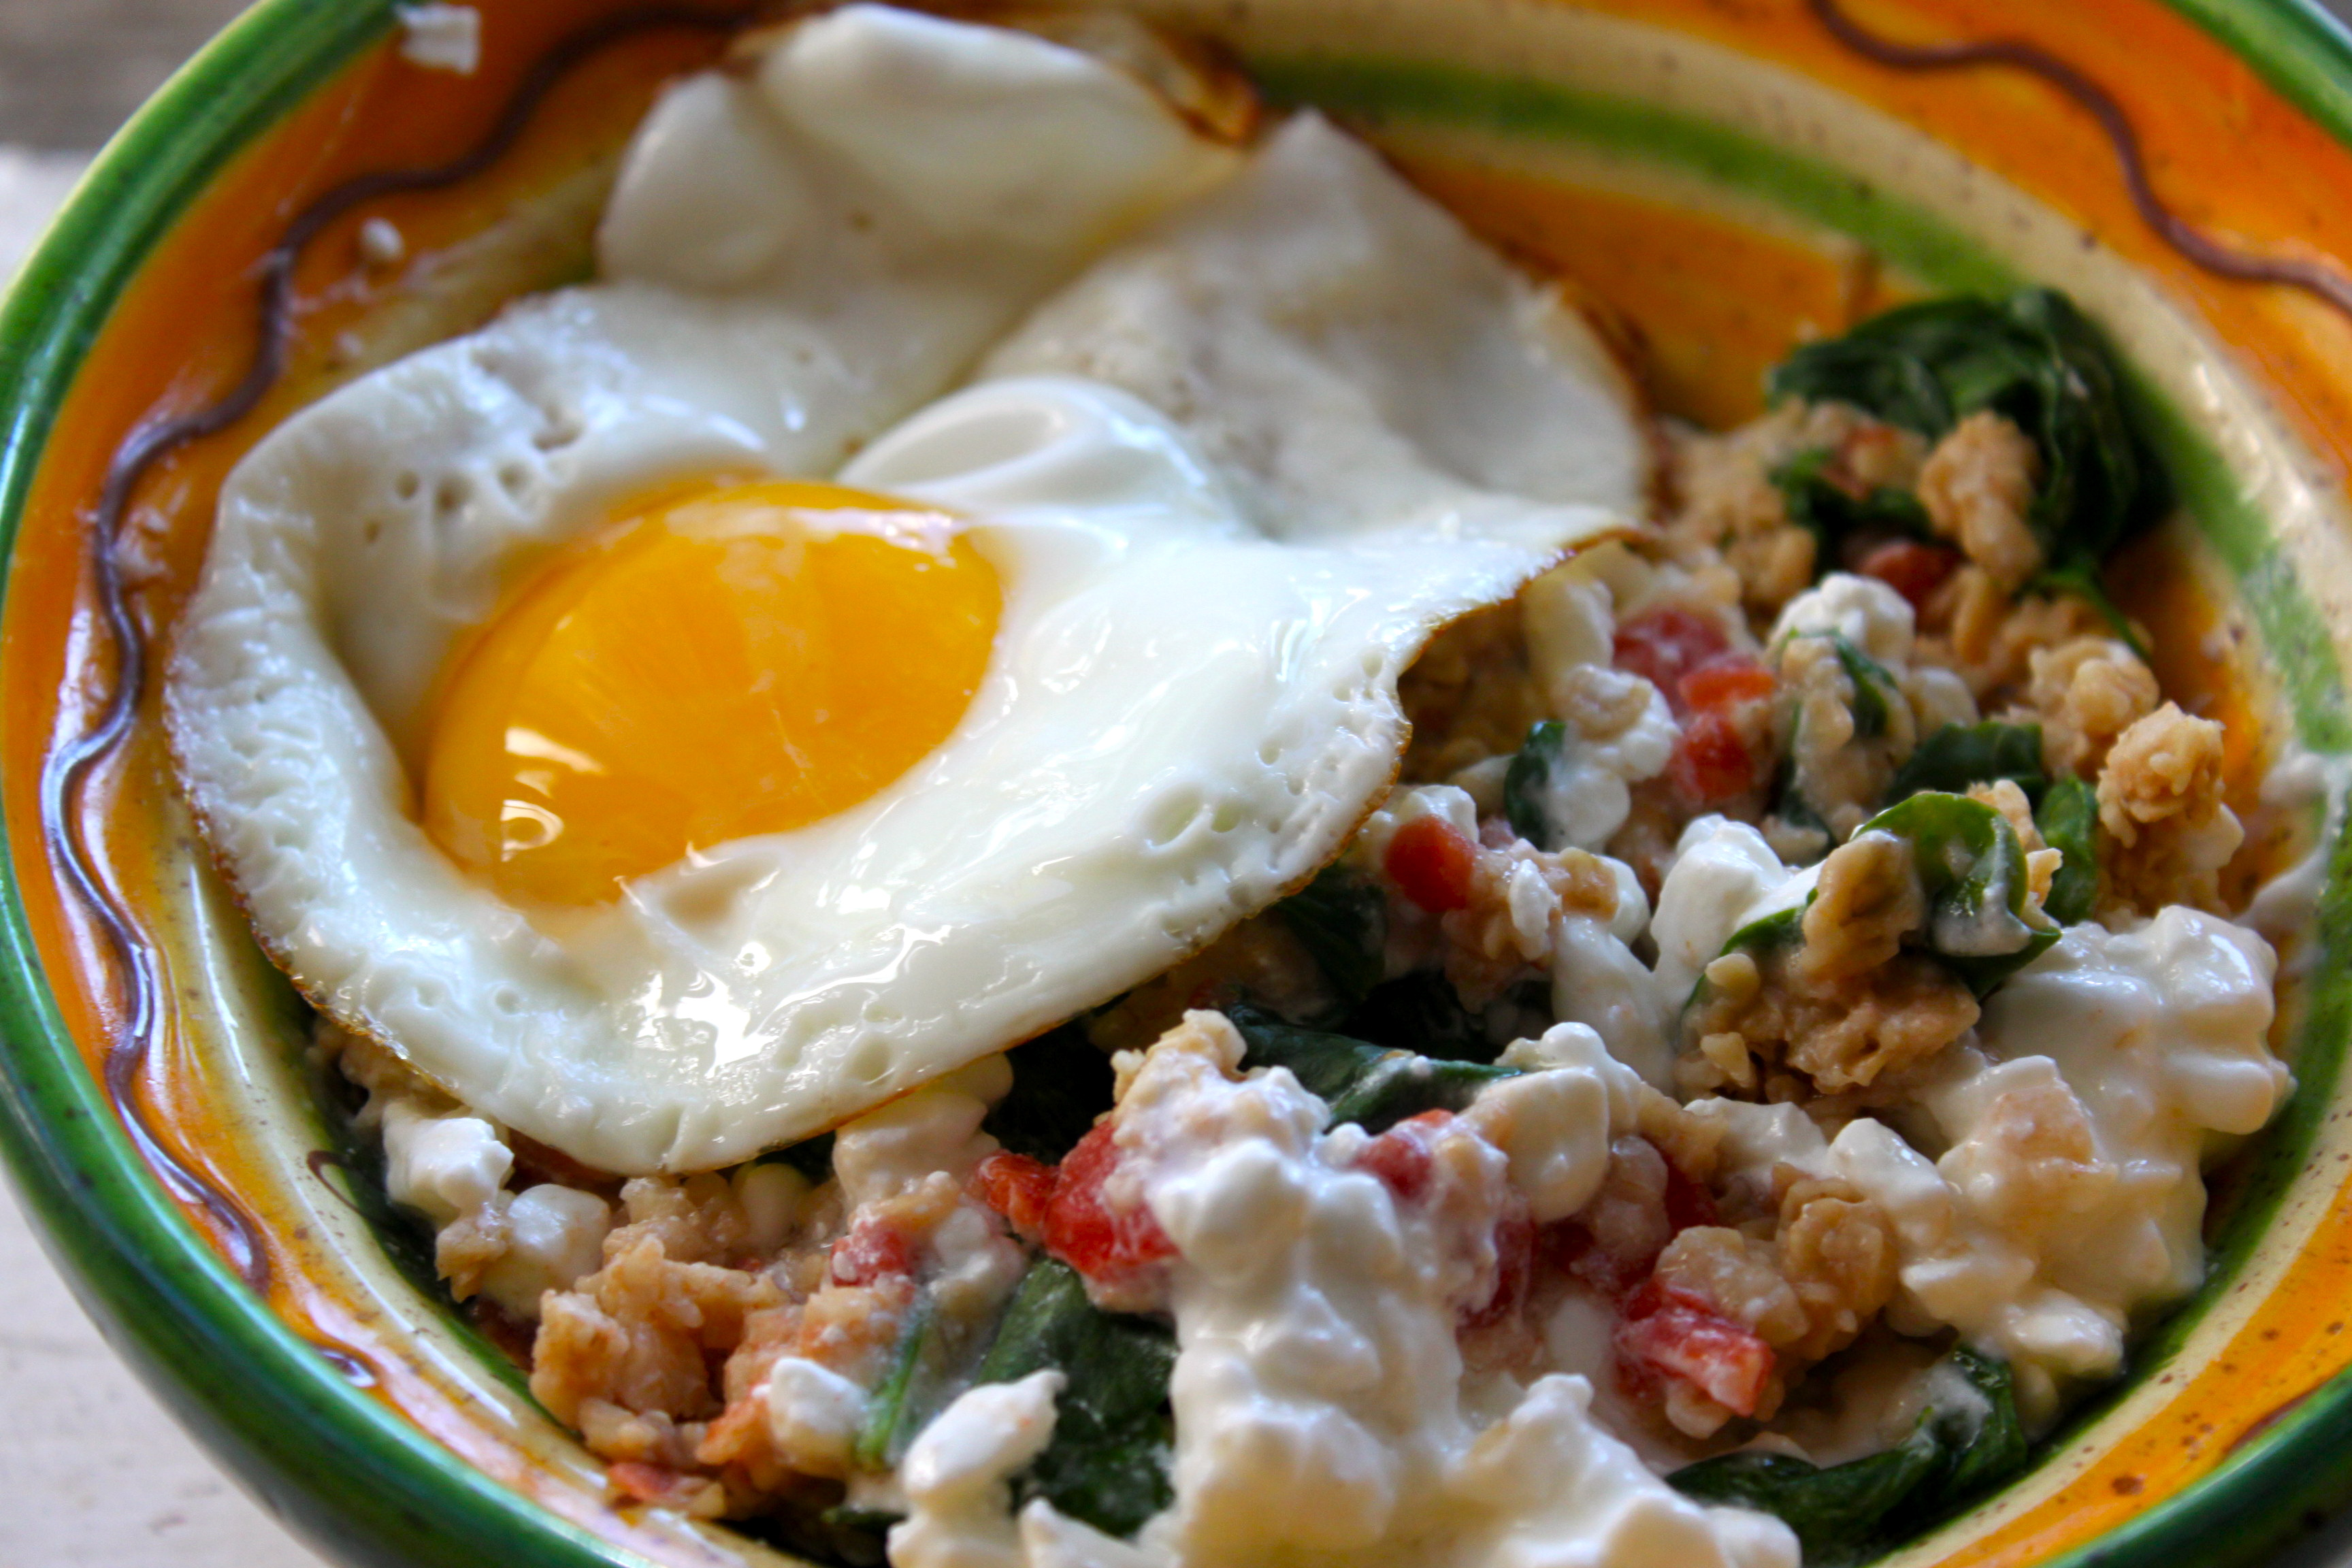 Elegant Savory Oats With Tomato, Spinach And Cottage Cheese